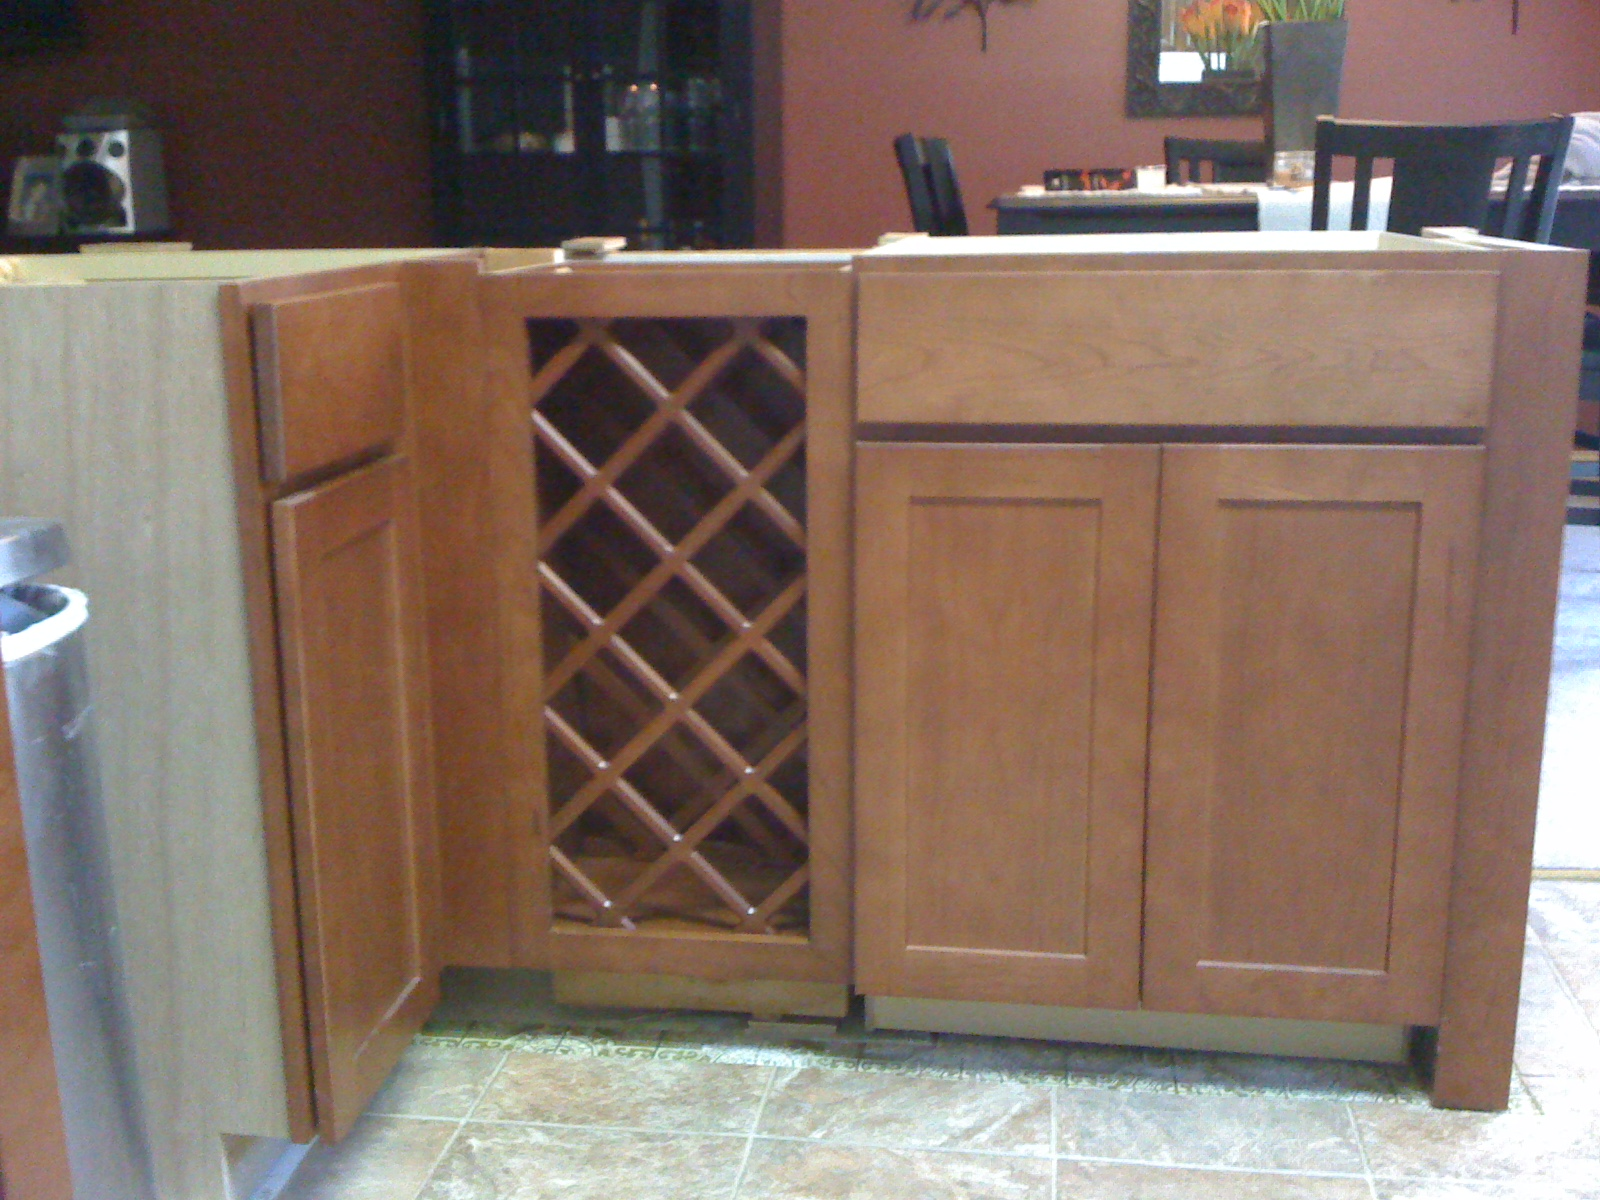 ... Installing 30 Inch Base Wine Rack Next To Base Cabinets Img_0166